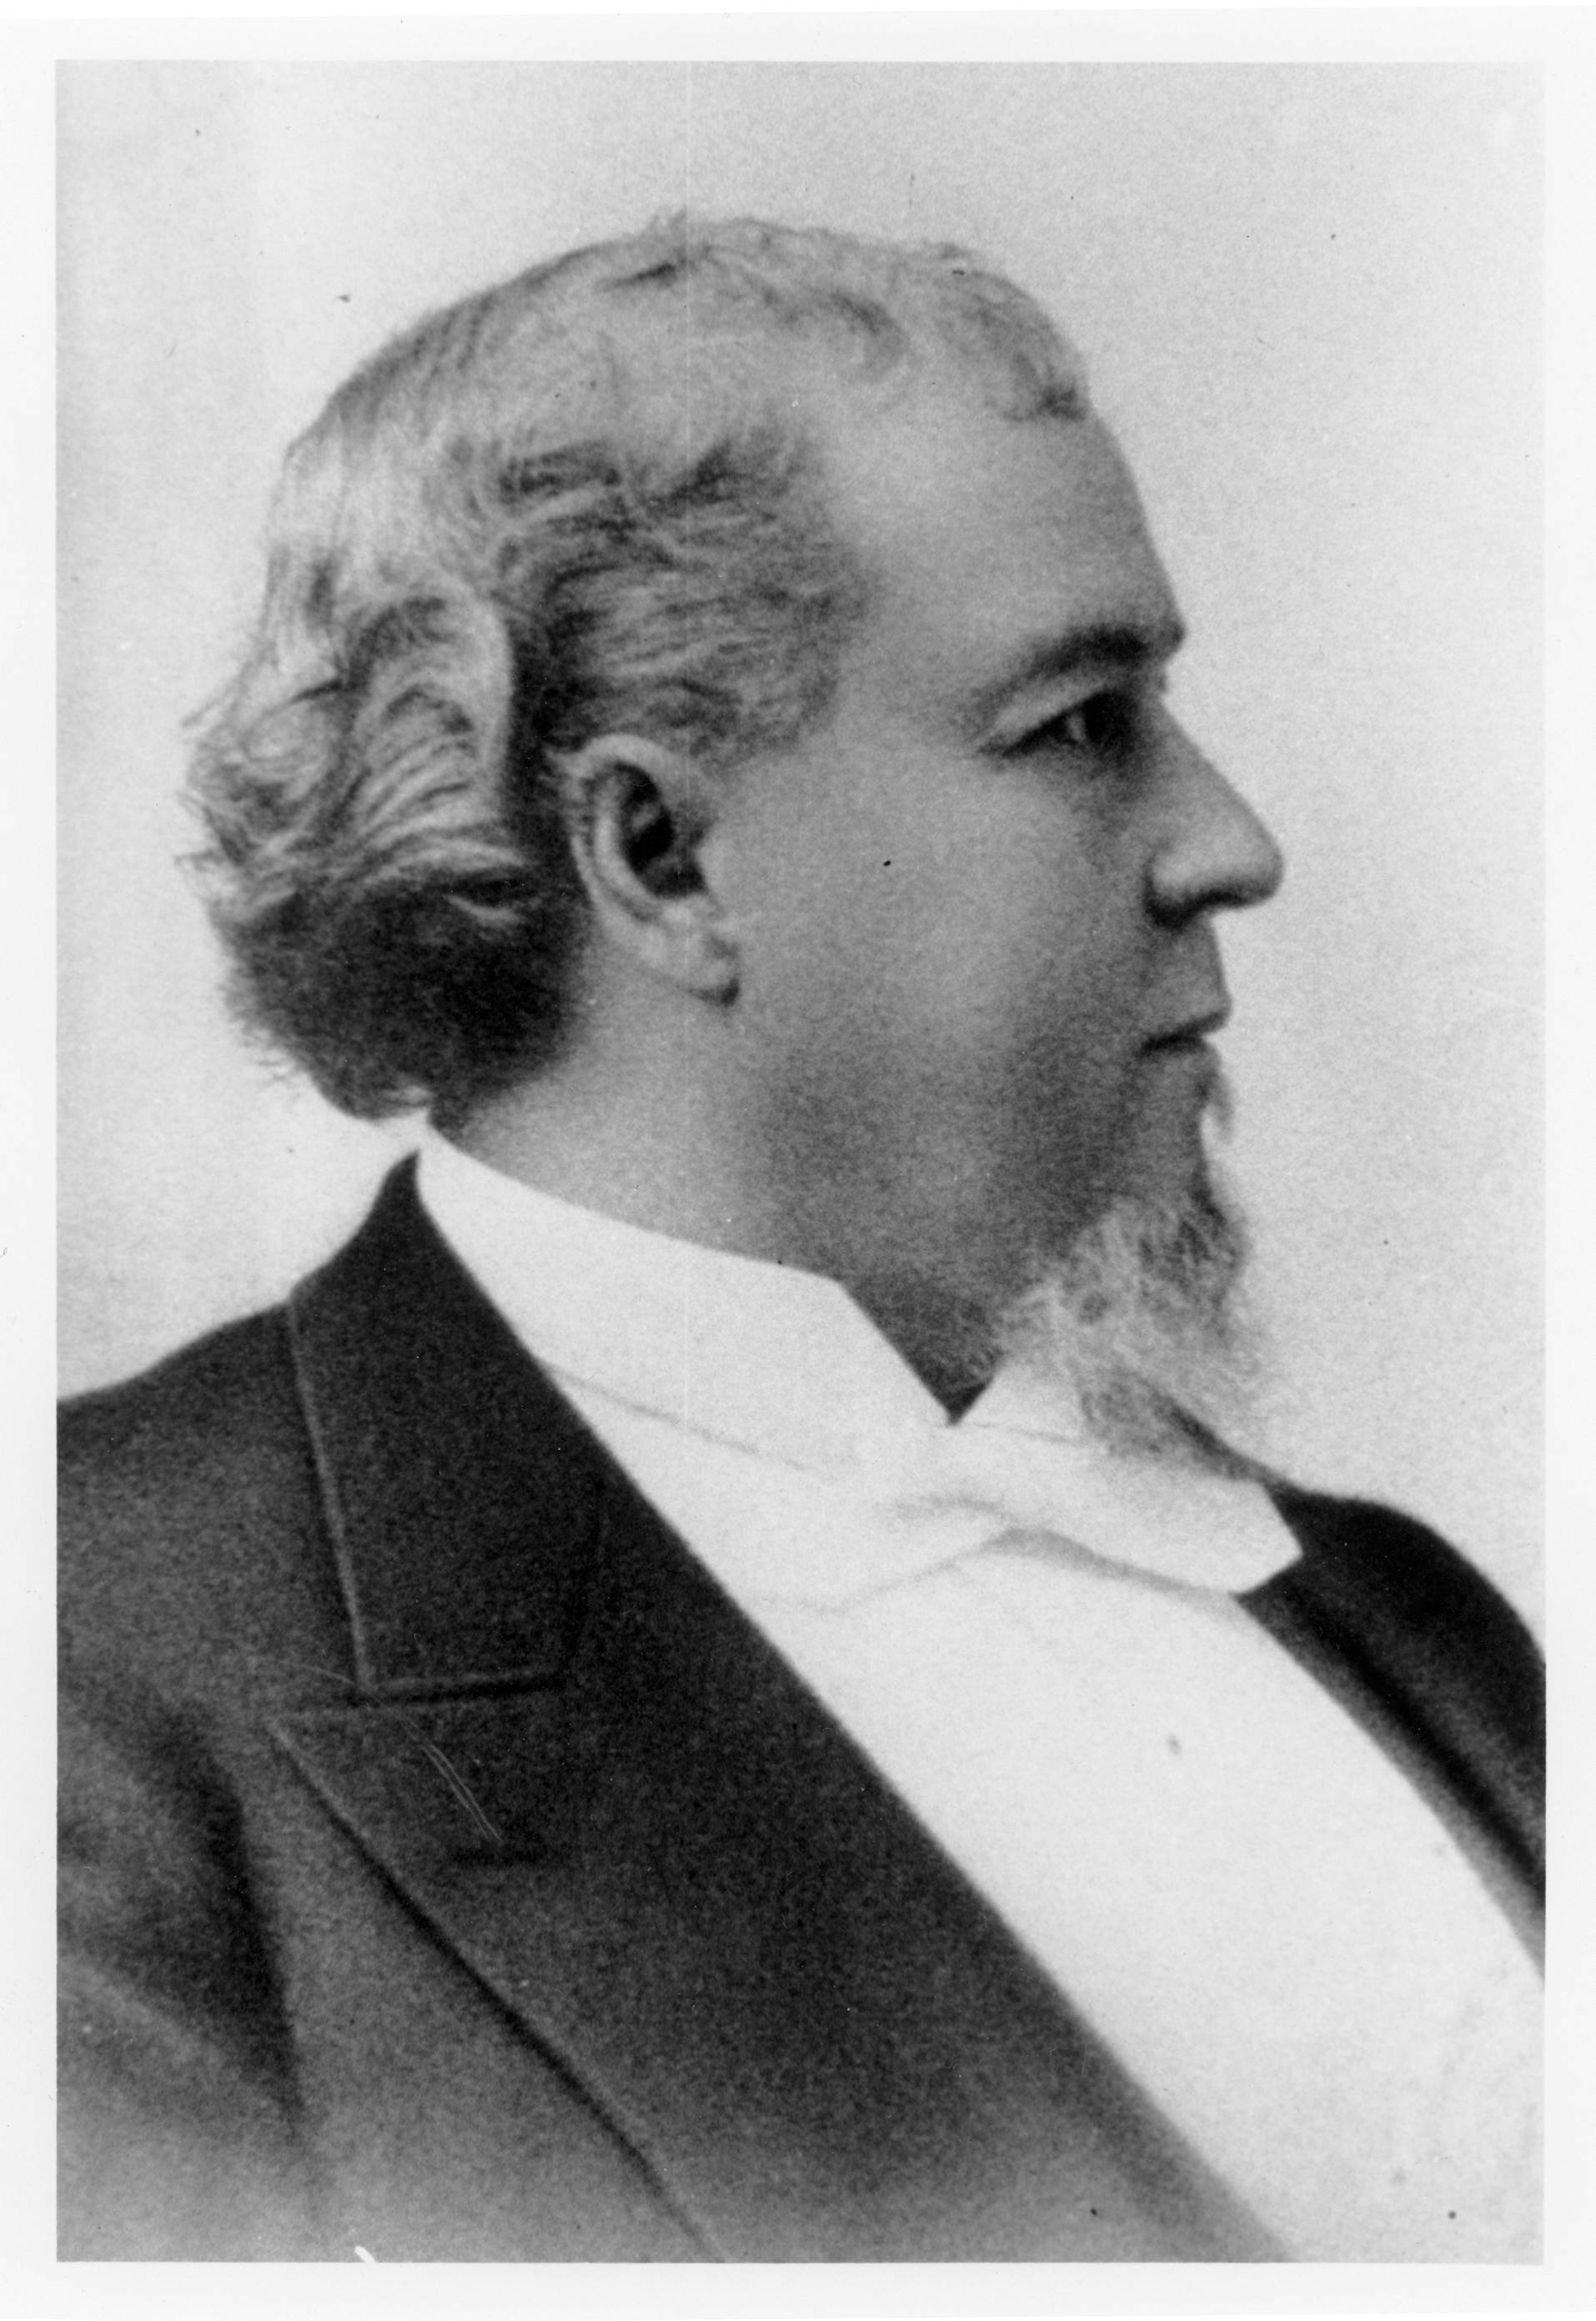 P.O. Hooper, M.D., one of the eight founders of the medical school.